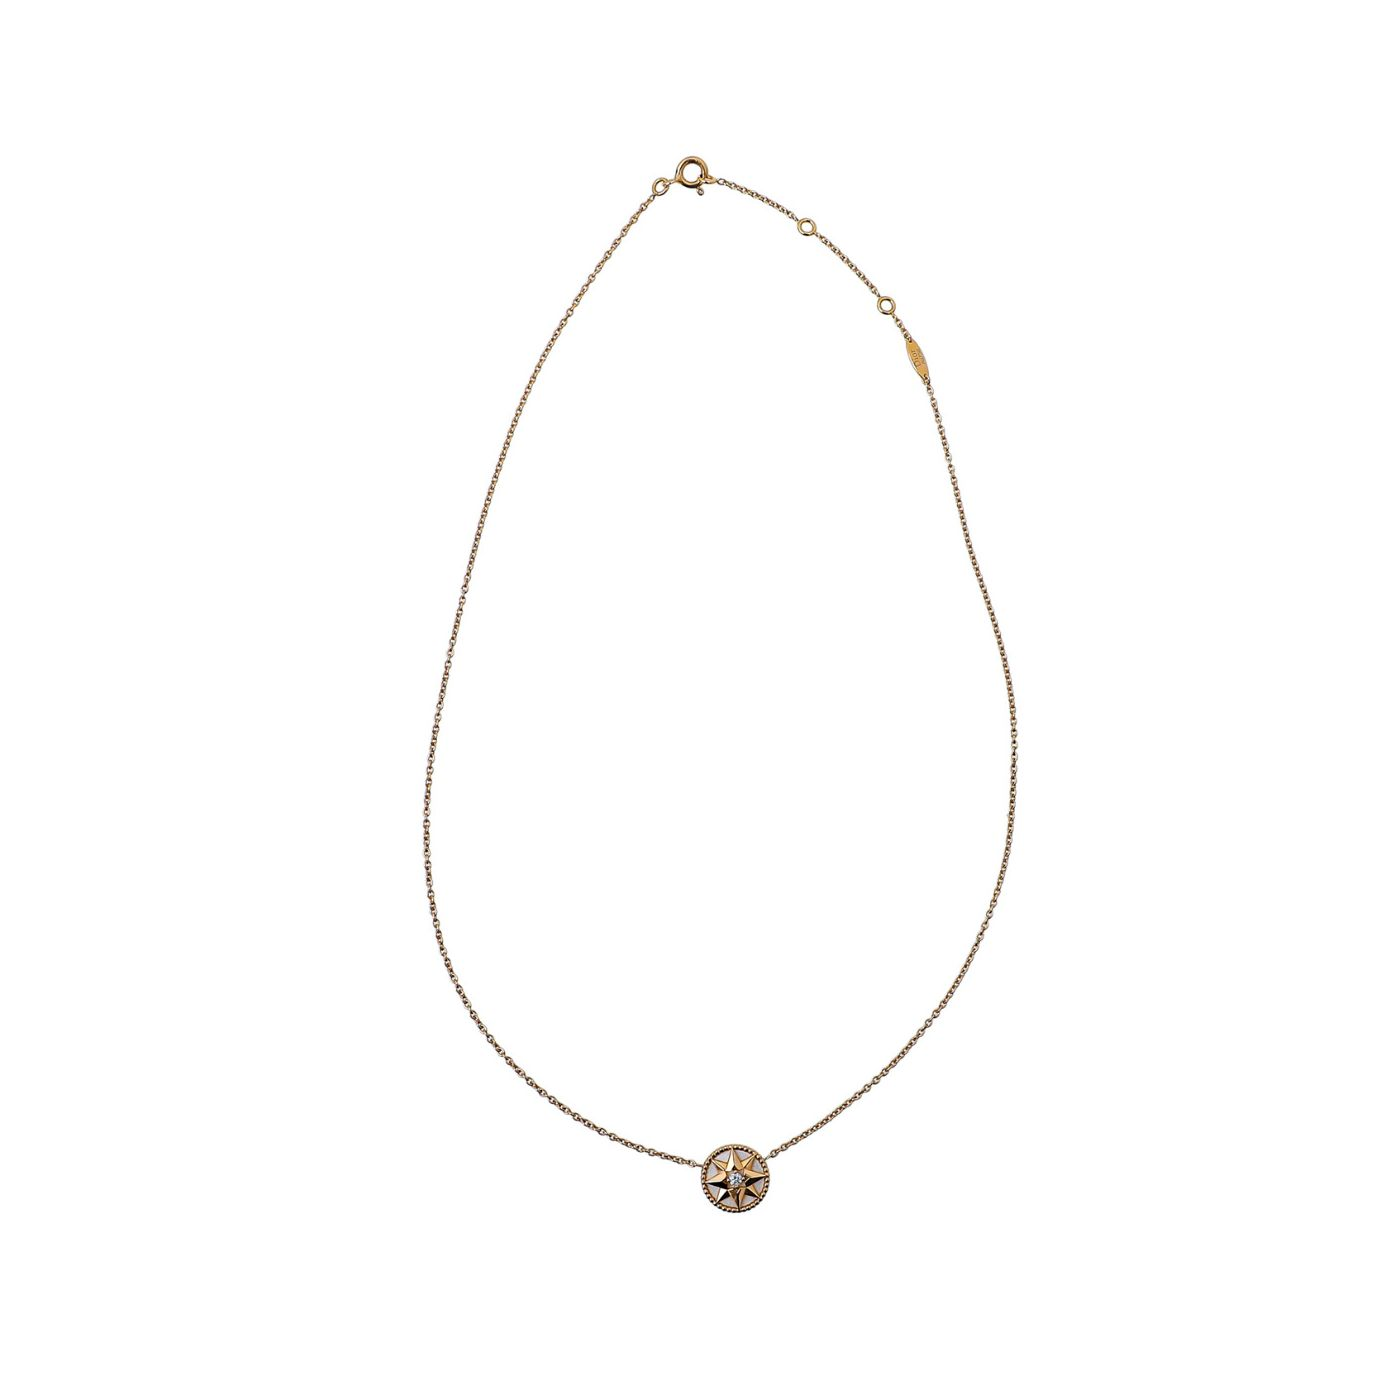 Christian Dior 18K Yellow Gold MOP Rose Des Vents Necklace